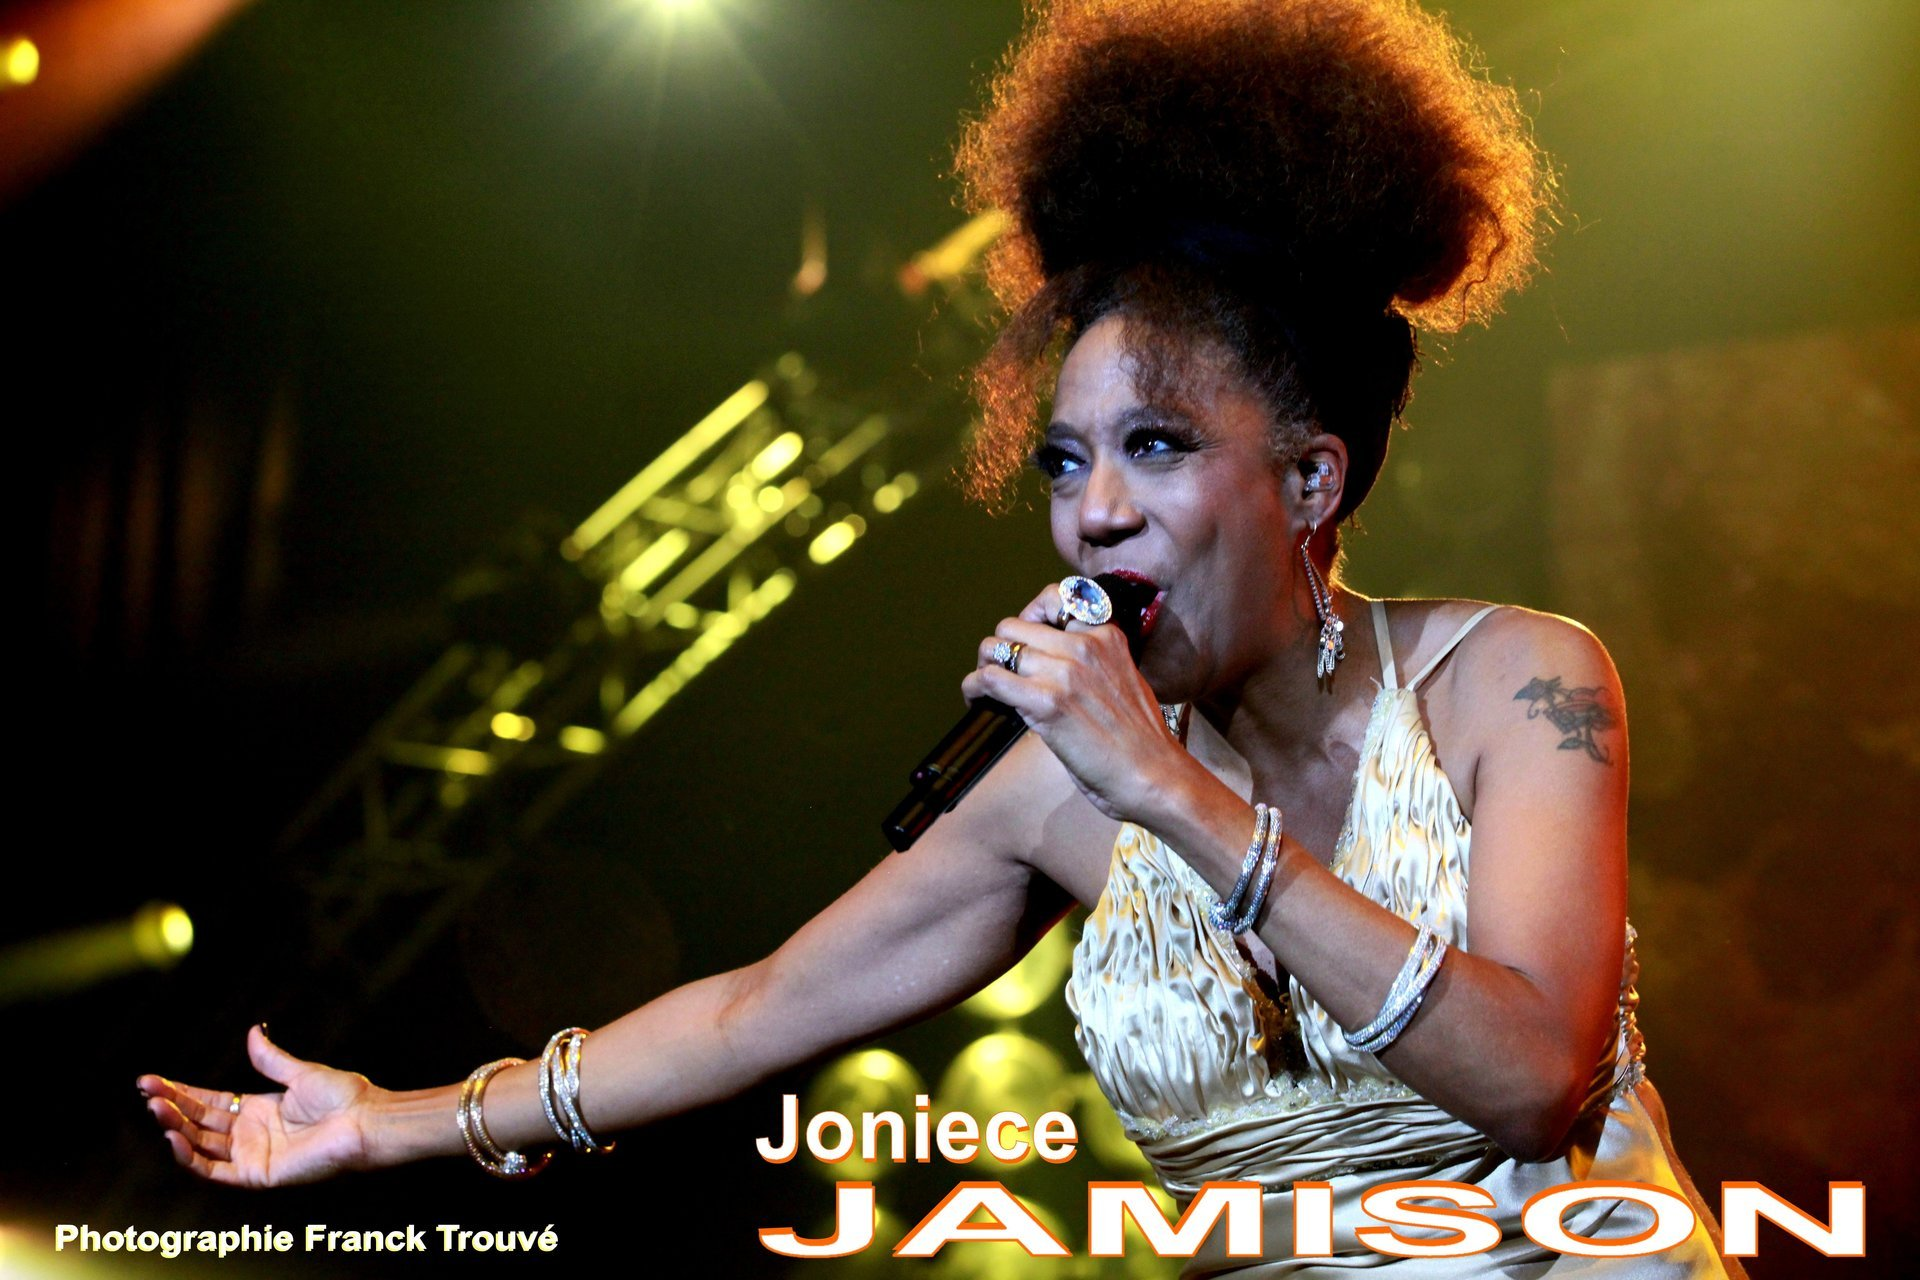 joniece jamison photo franck trouve